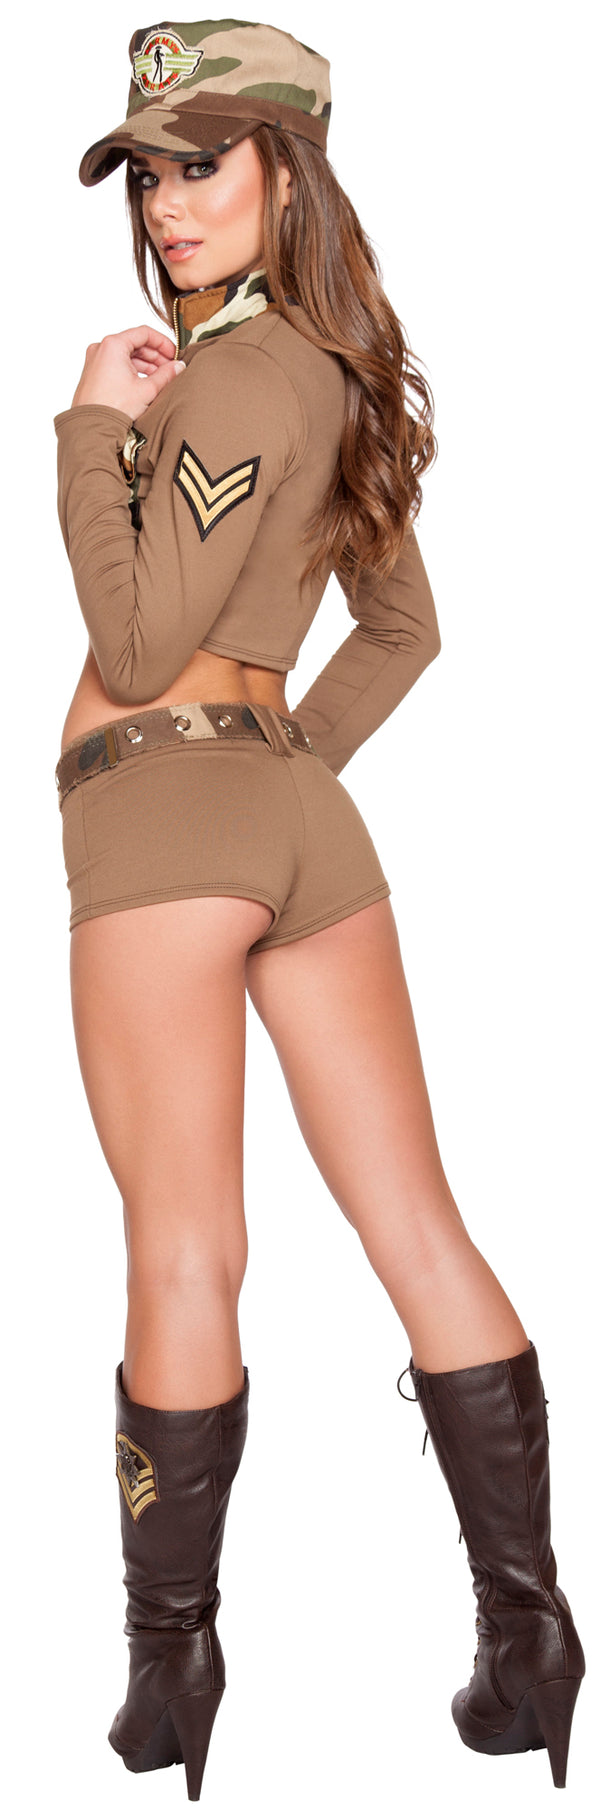 Sexy Soldier Babe Army Costume RM4591 Back